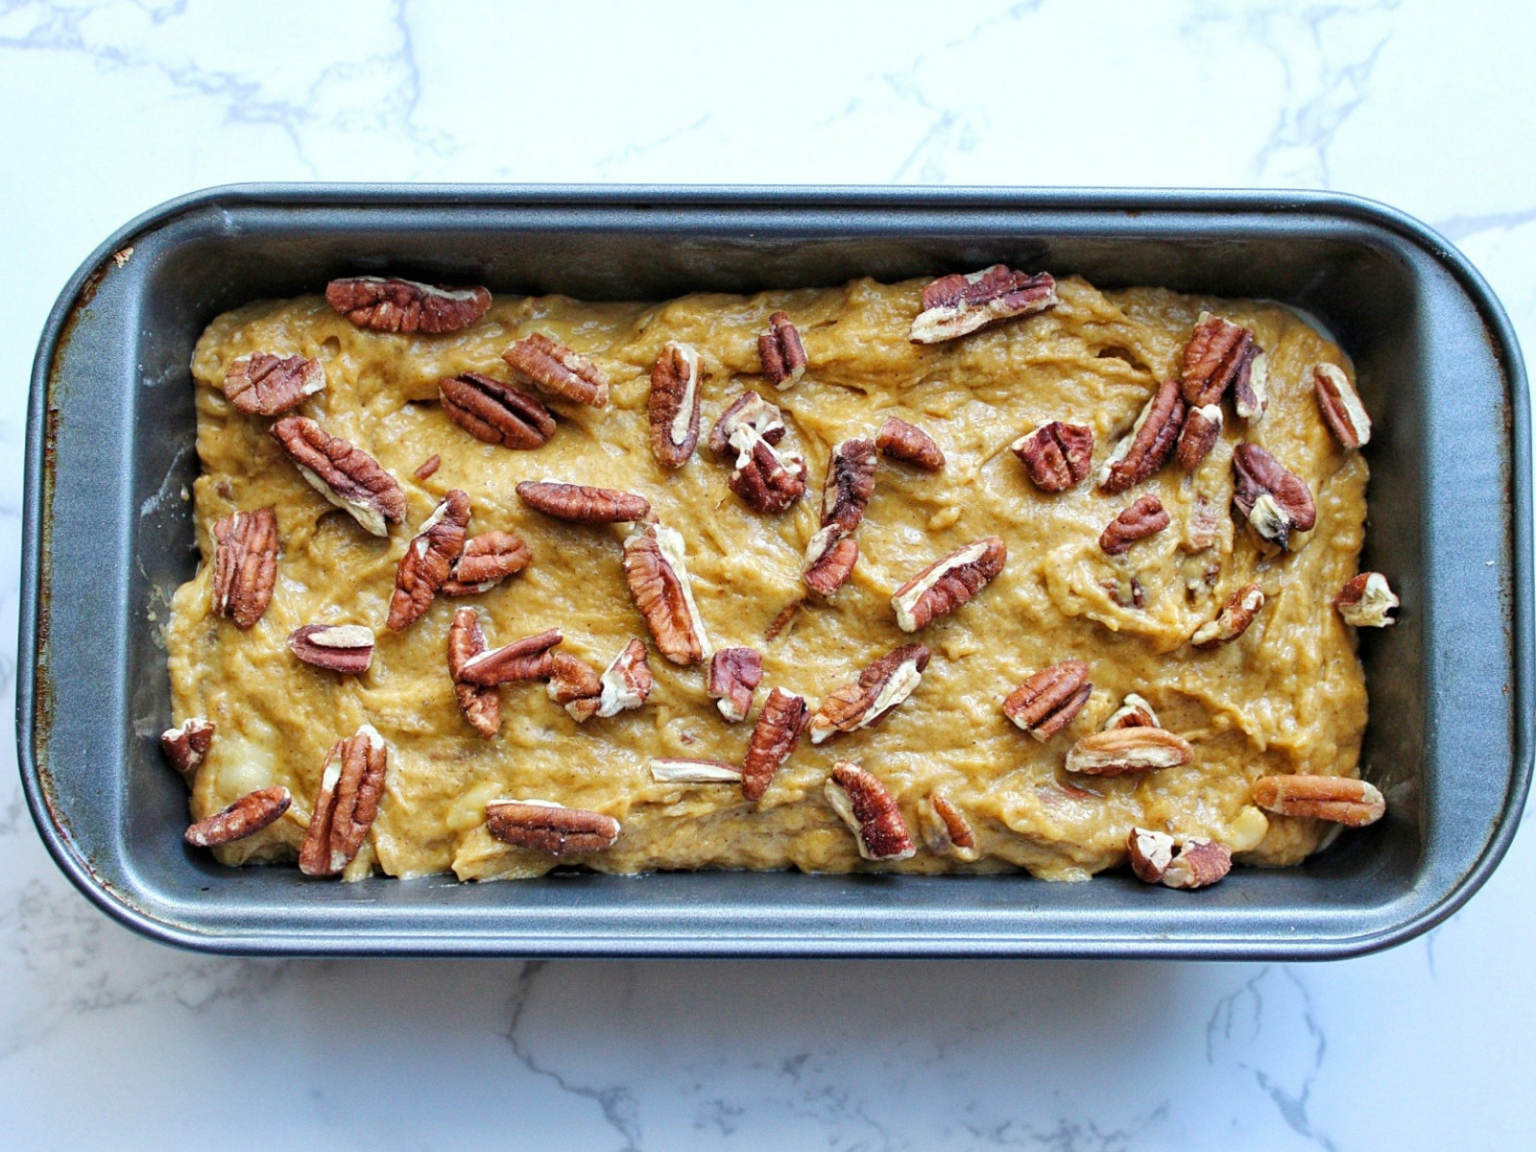 Unbaked or raw sweet cook bread in a loaf pan topped with chopped pecans.